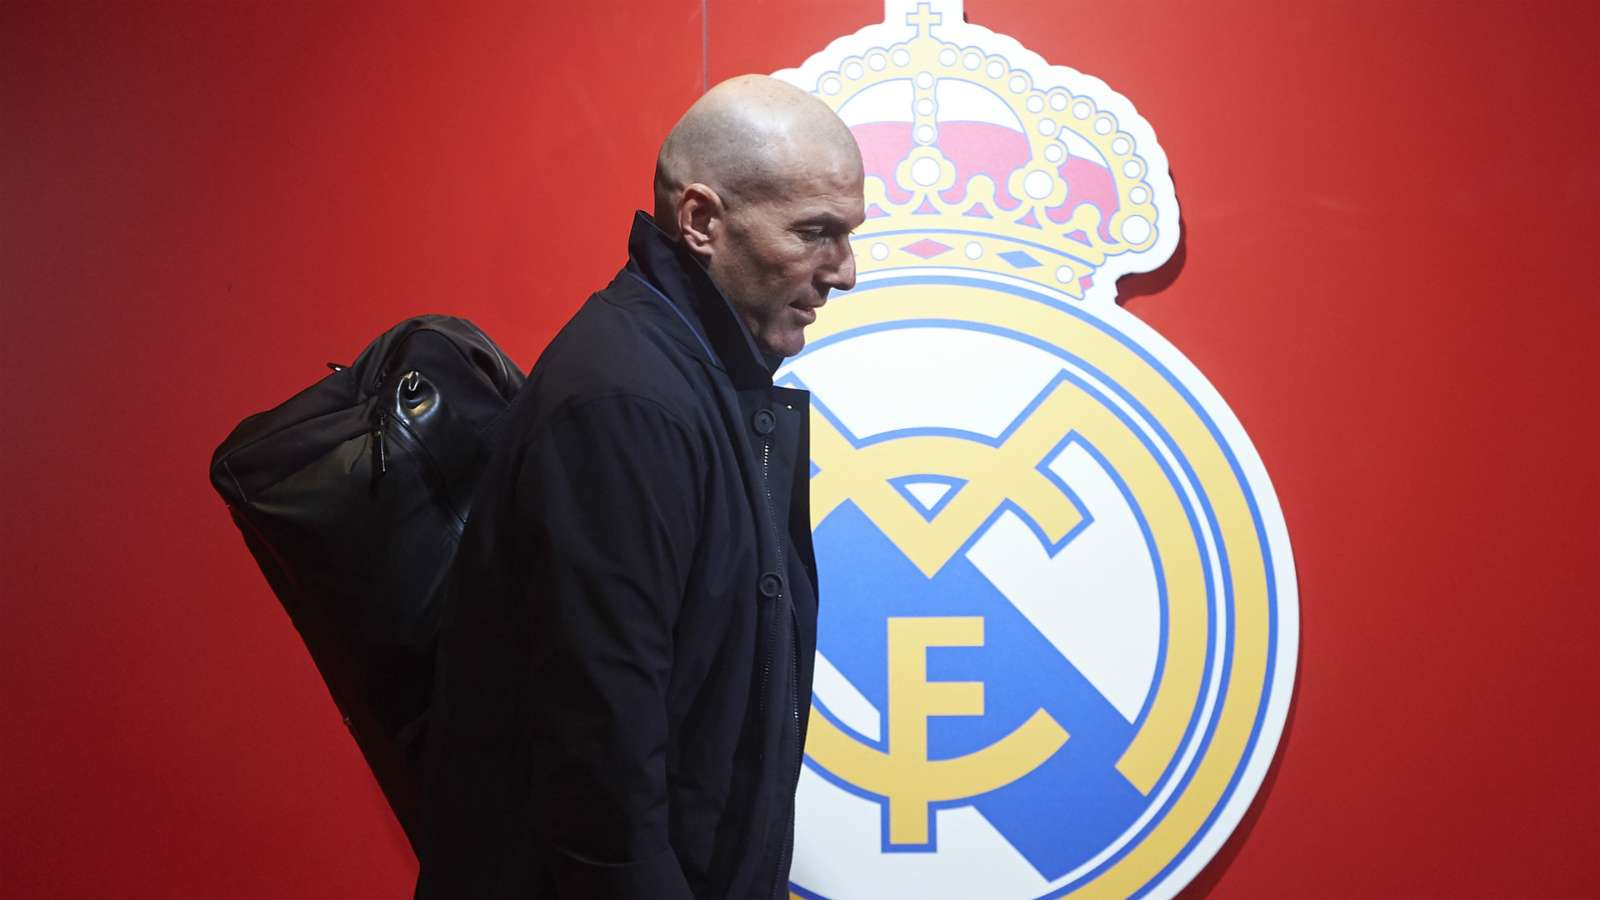 Zidane refuses to talk about El Clásico and Mbappe before facing Valencia